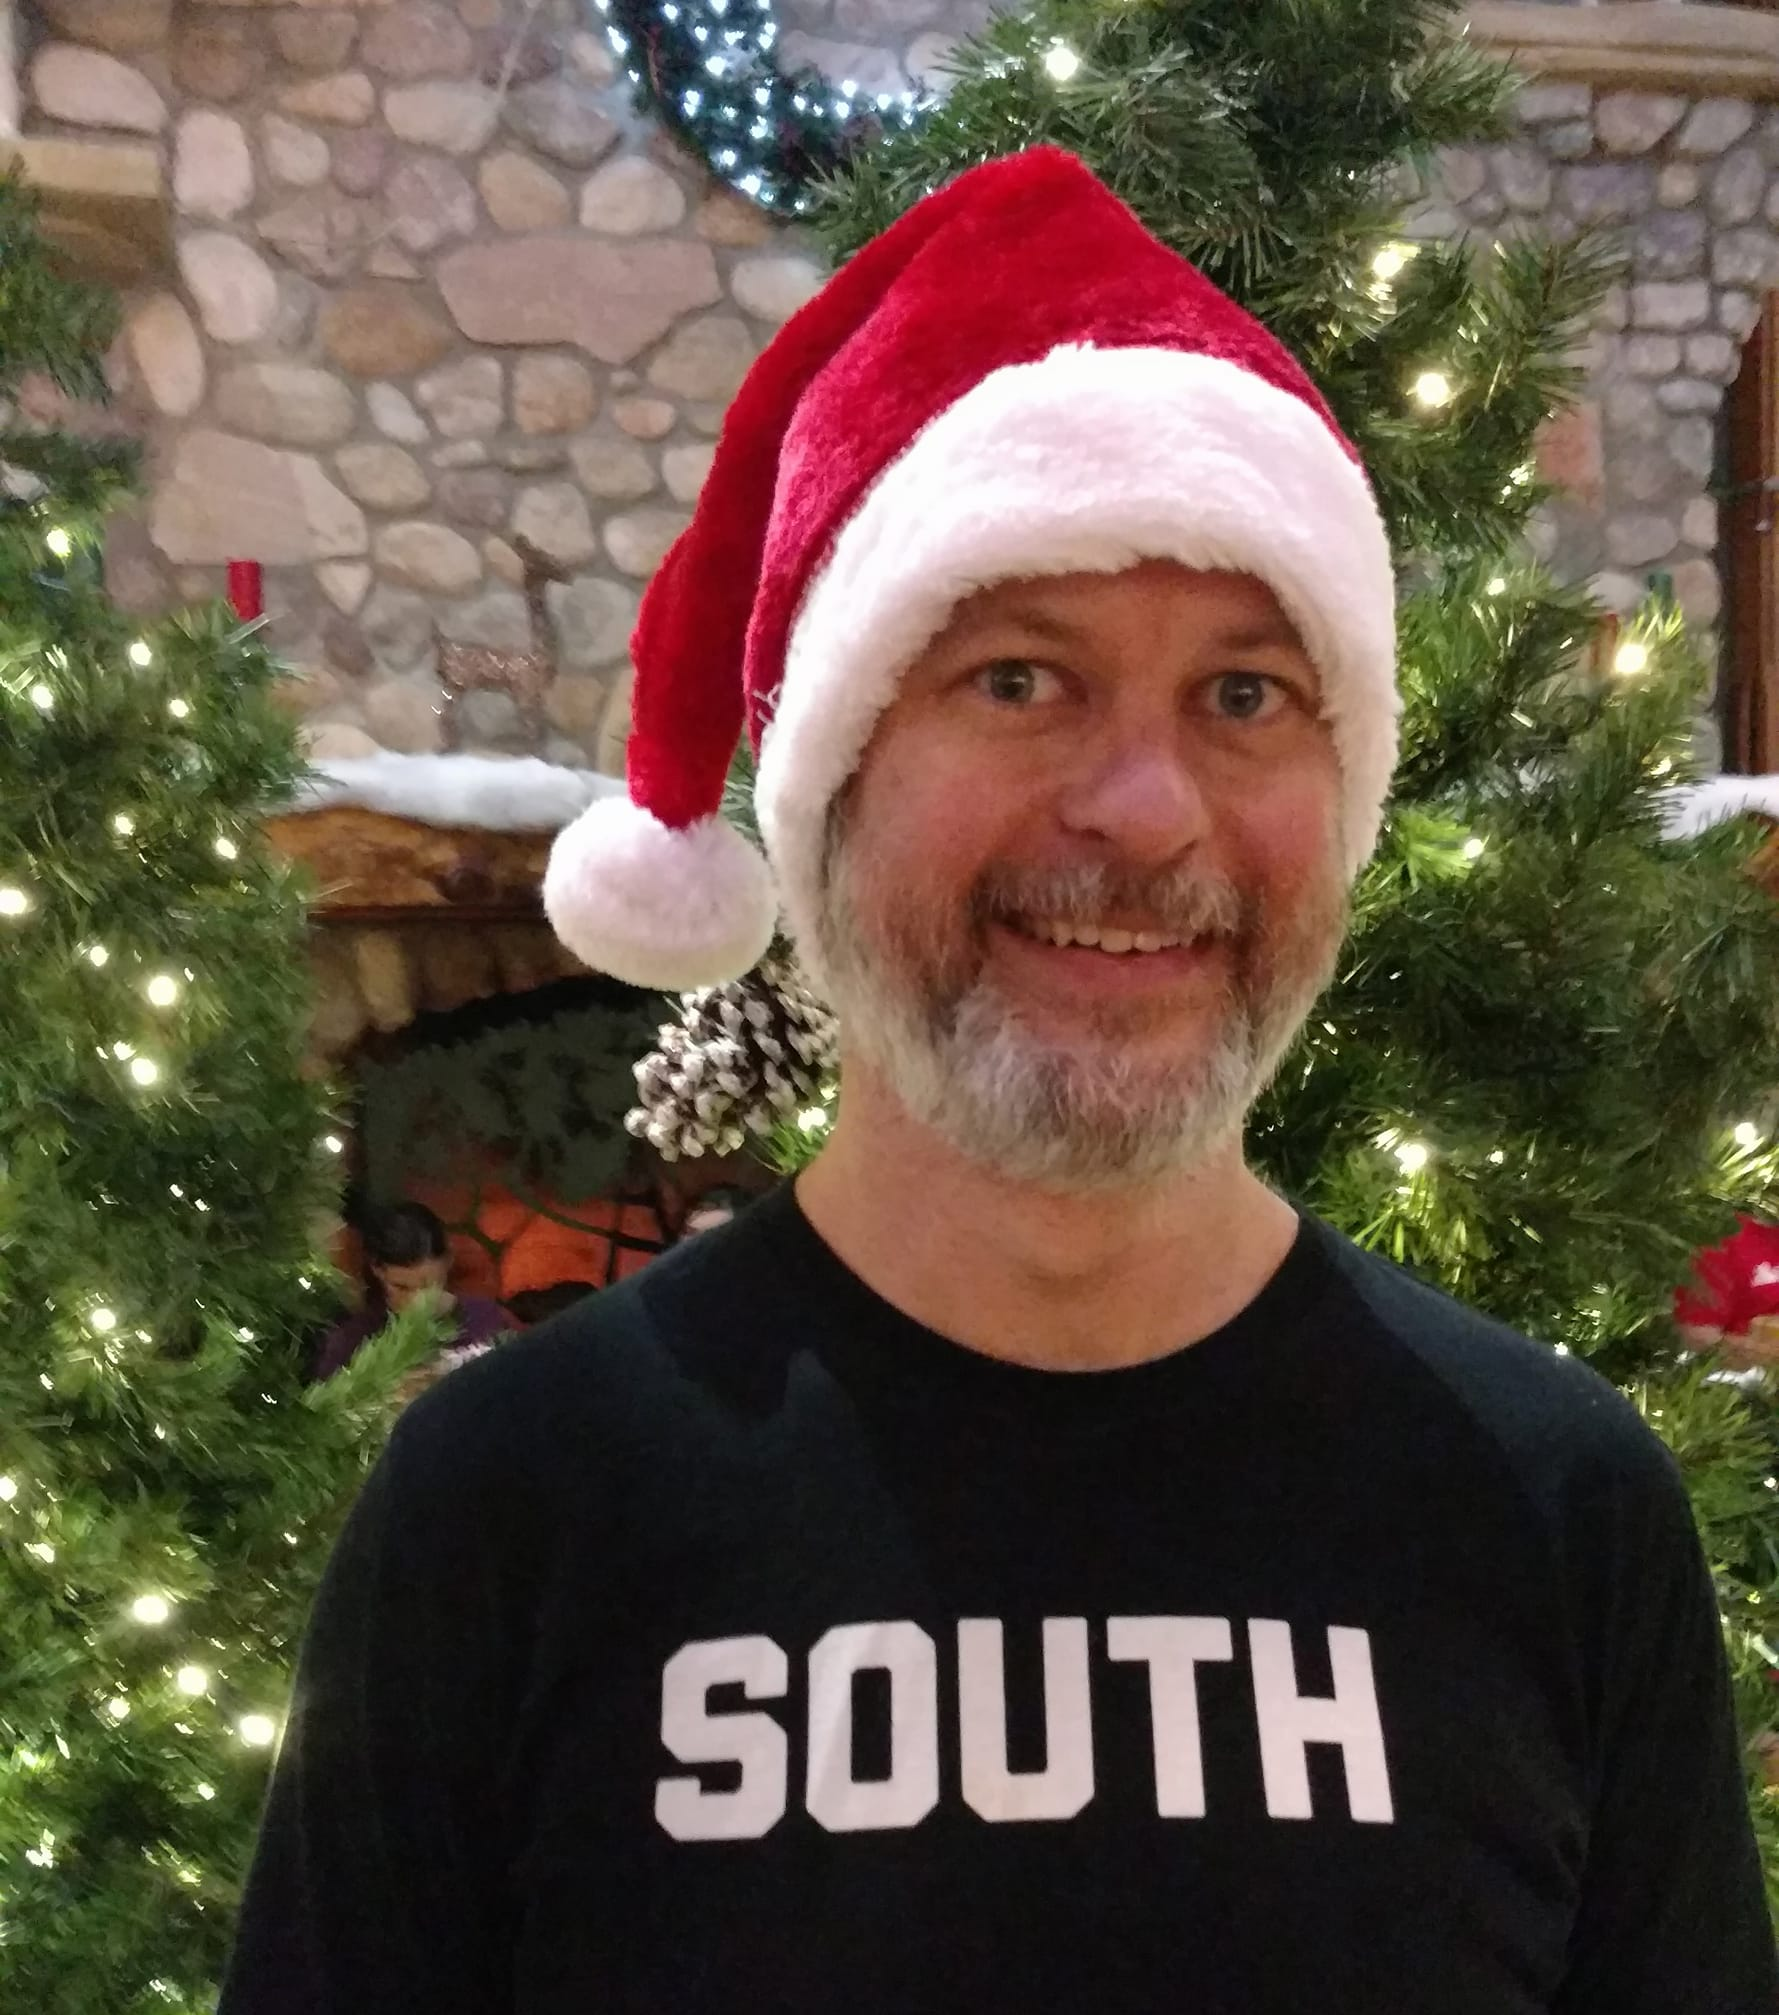 Butler in Bitter Southerner shirt and Christmas hat